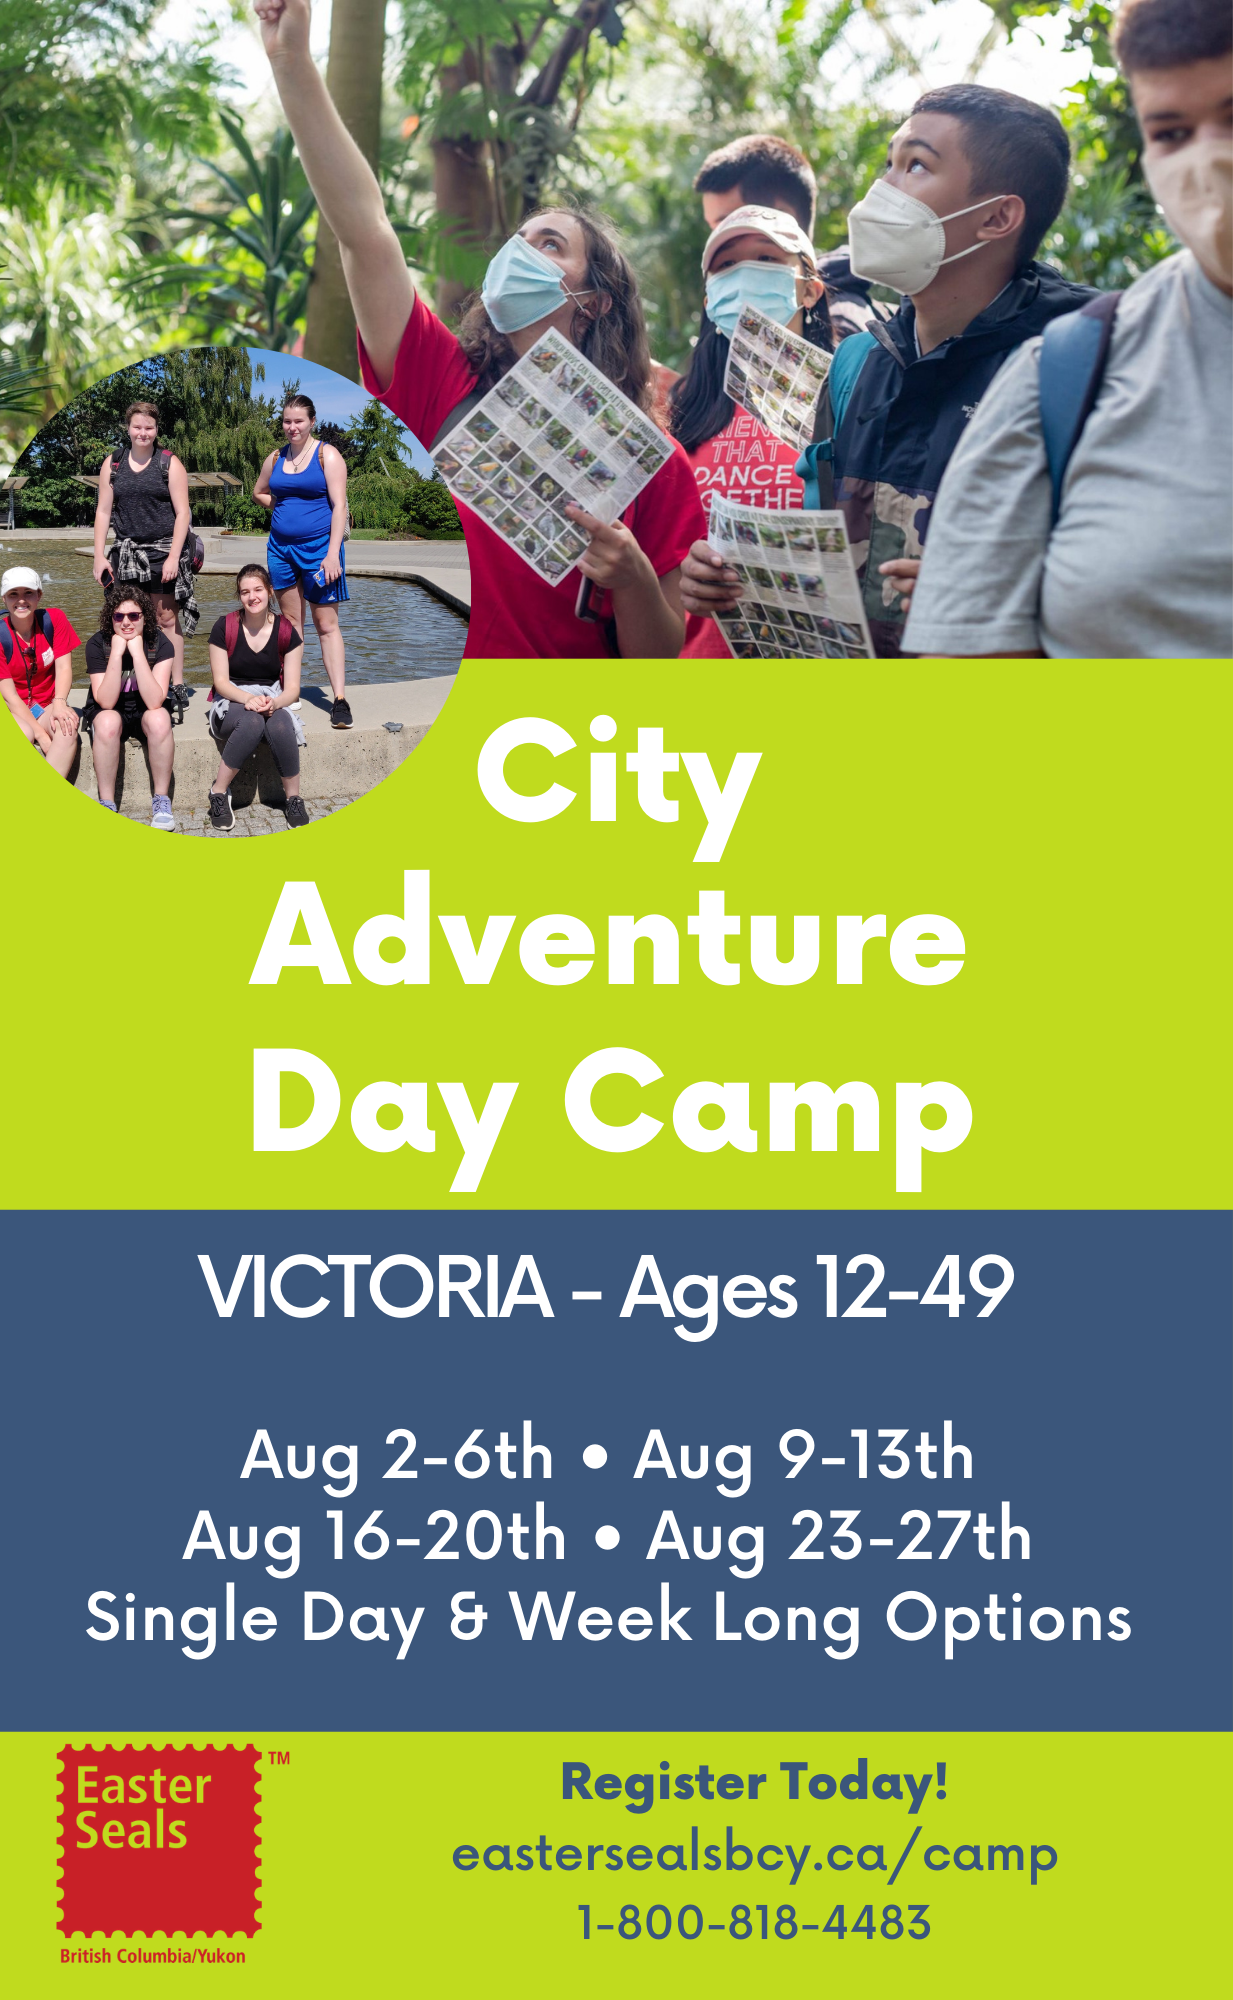 City Adventure Day Camp in Victoria - Single Day & Week Long Options (Ages 12-49)